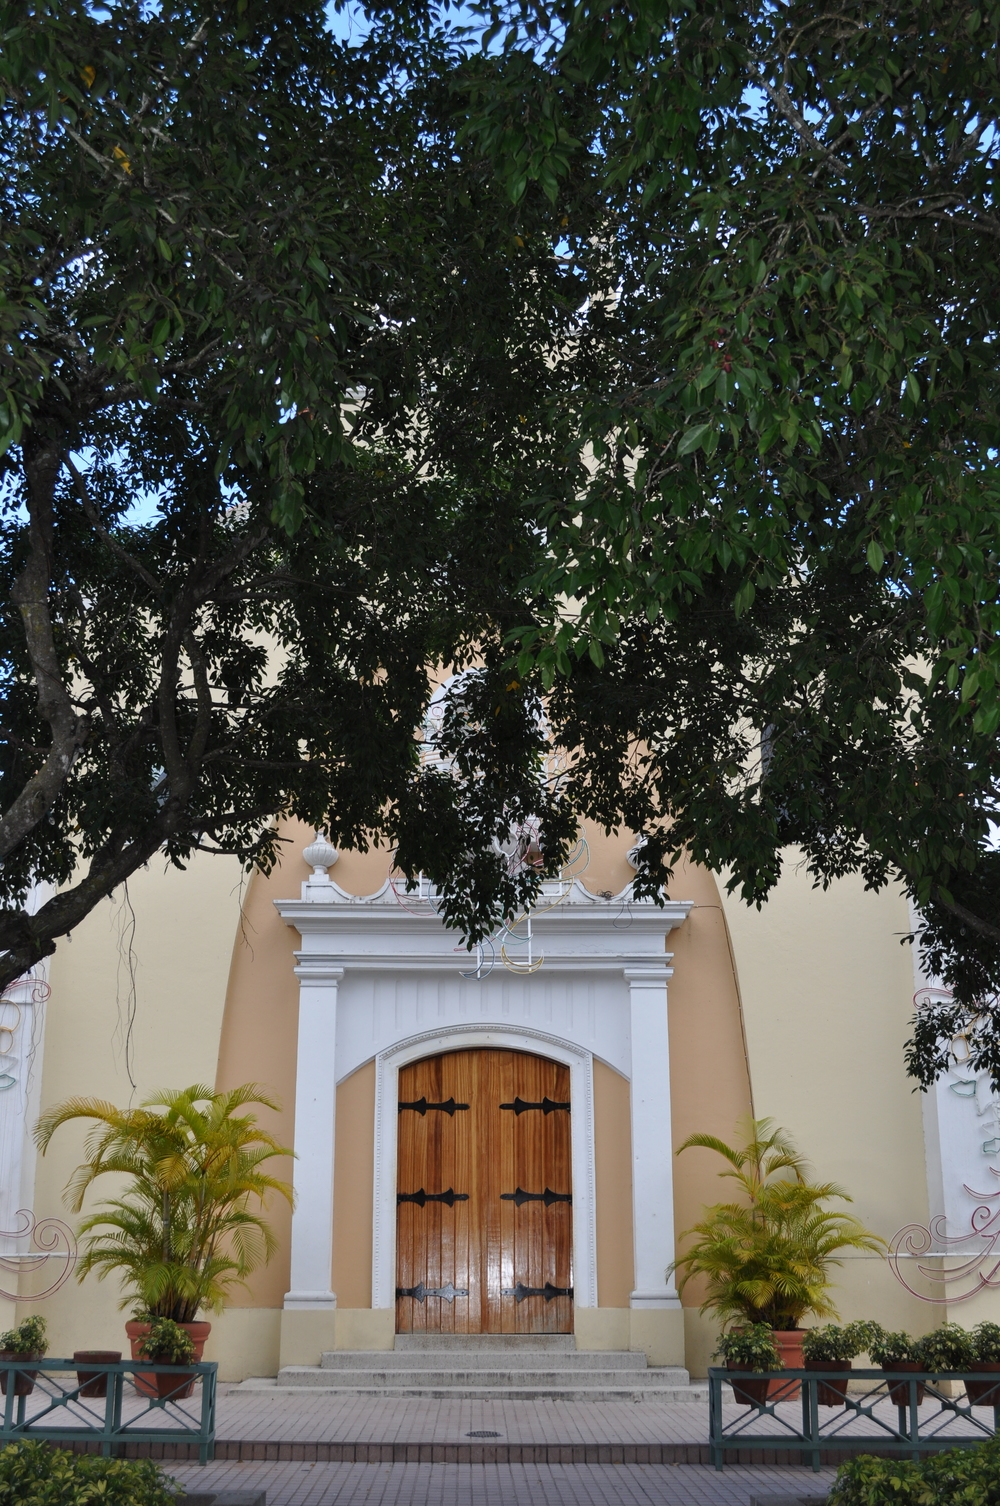 Like many of the towns in Puerto Rico, the church is in front of the plaza. Photo: Pamy Rojas